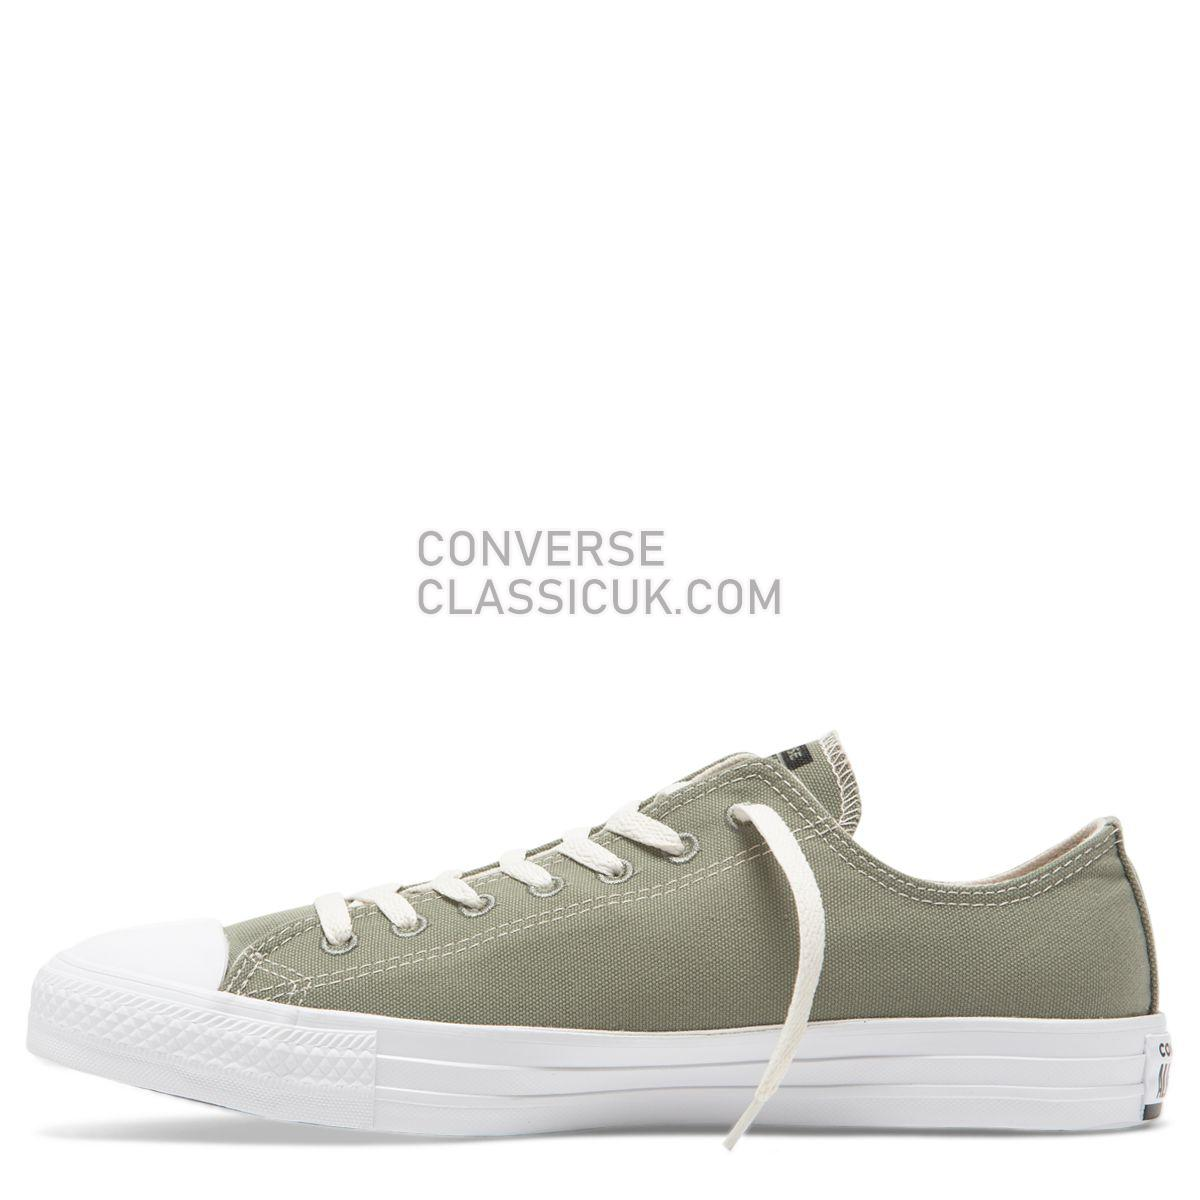 Converse Chuck Taylor All Star Renew Canvas Low Top Jade Stone Mens Womens Unisex 164922 Jade Stone/Black/White Shoes